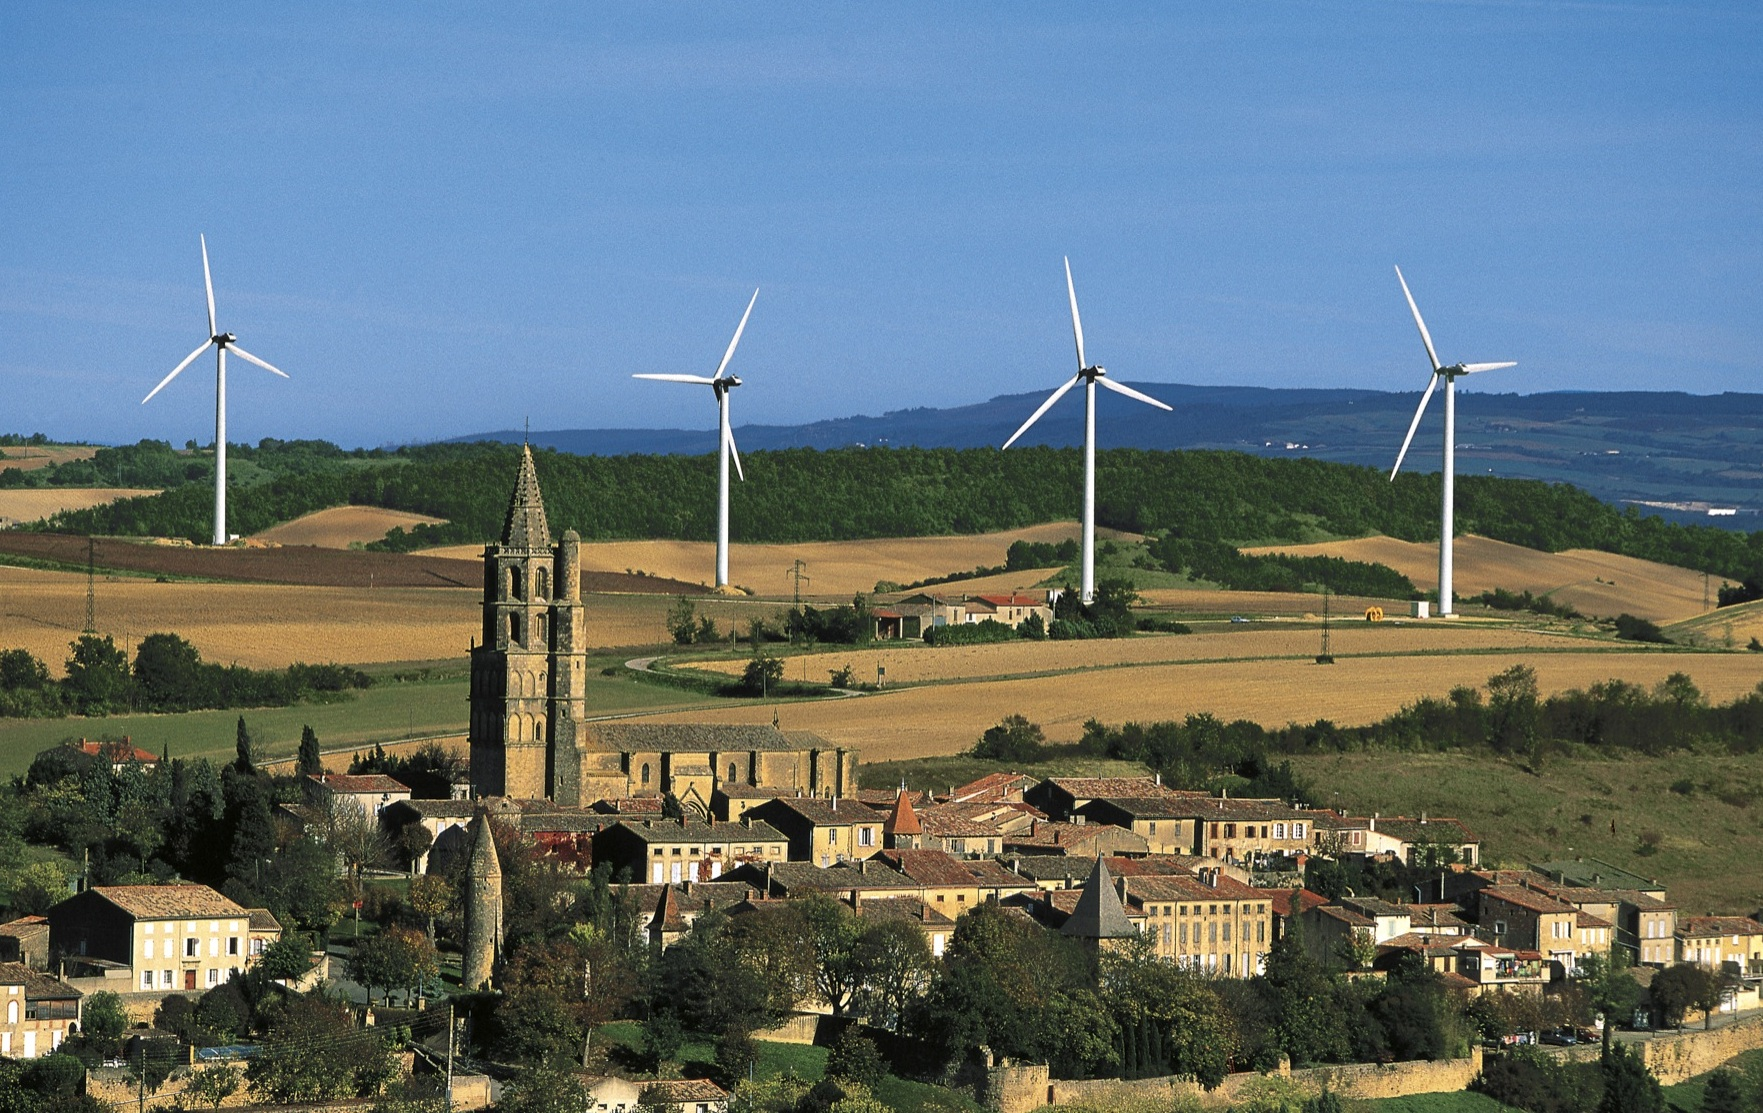 Wind expected to surpass hydro as largest renewable energy source